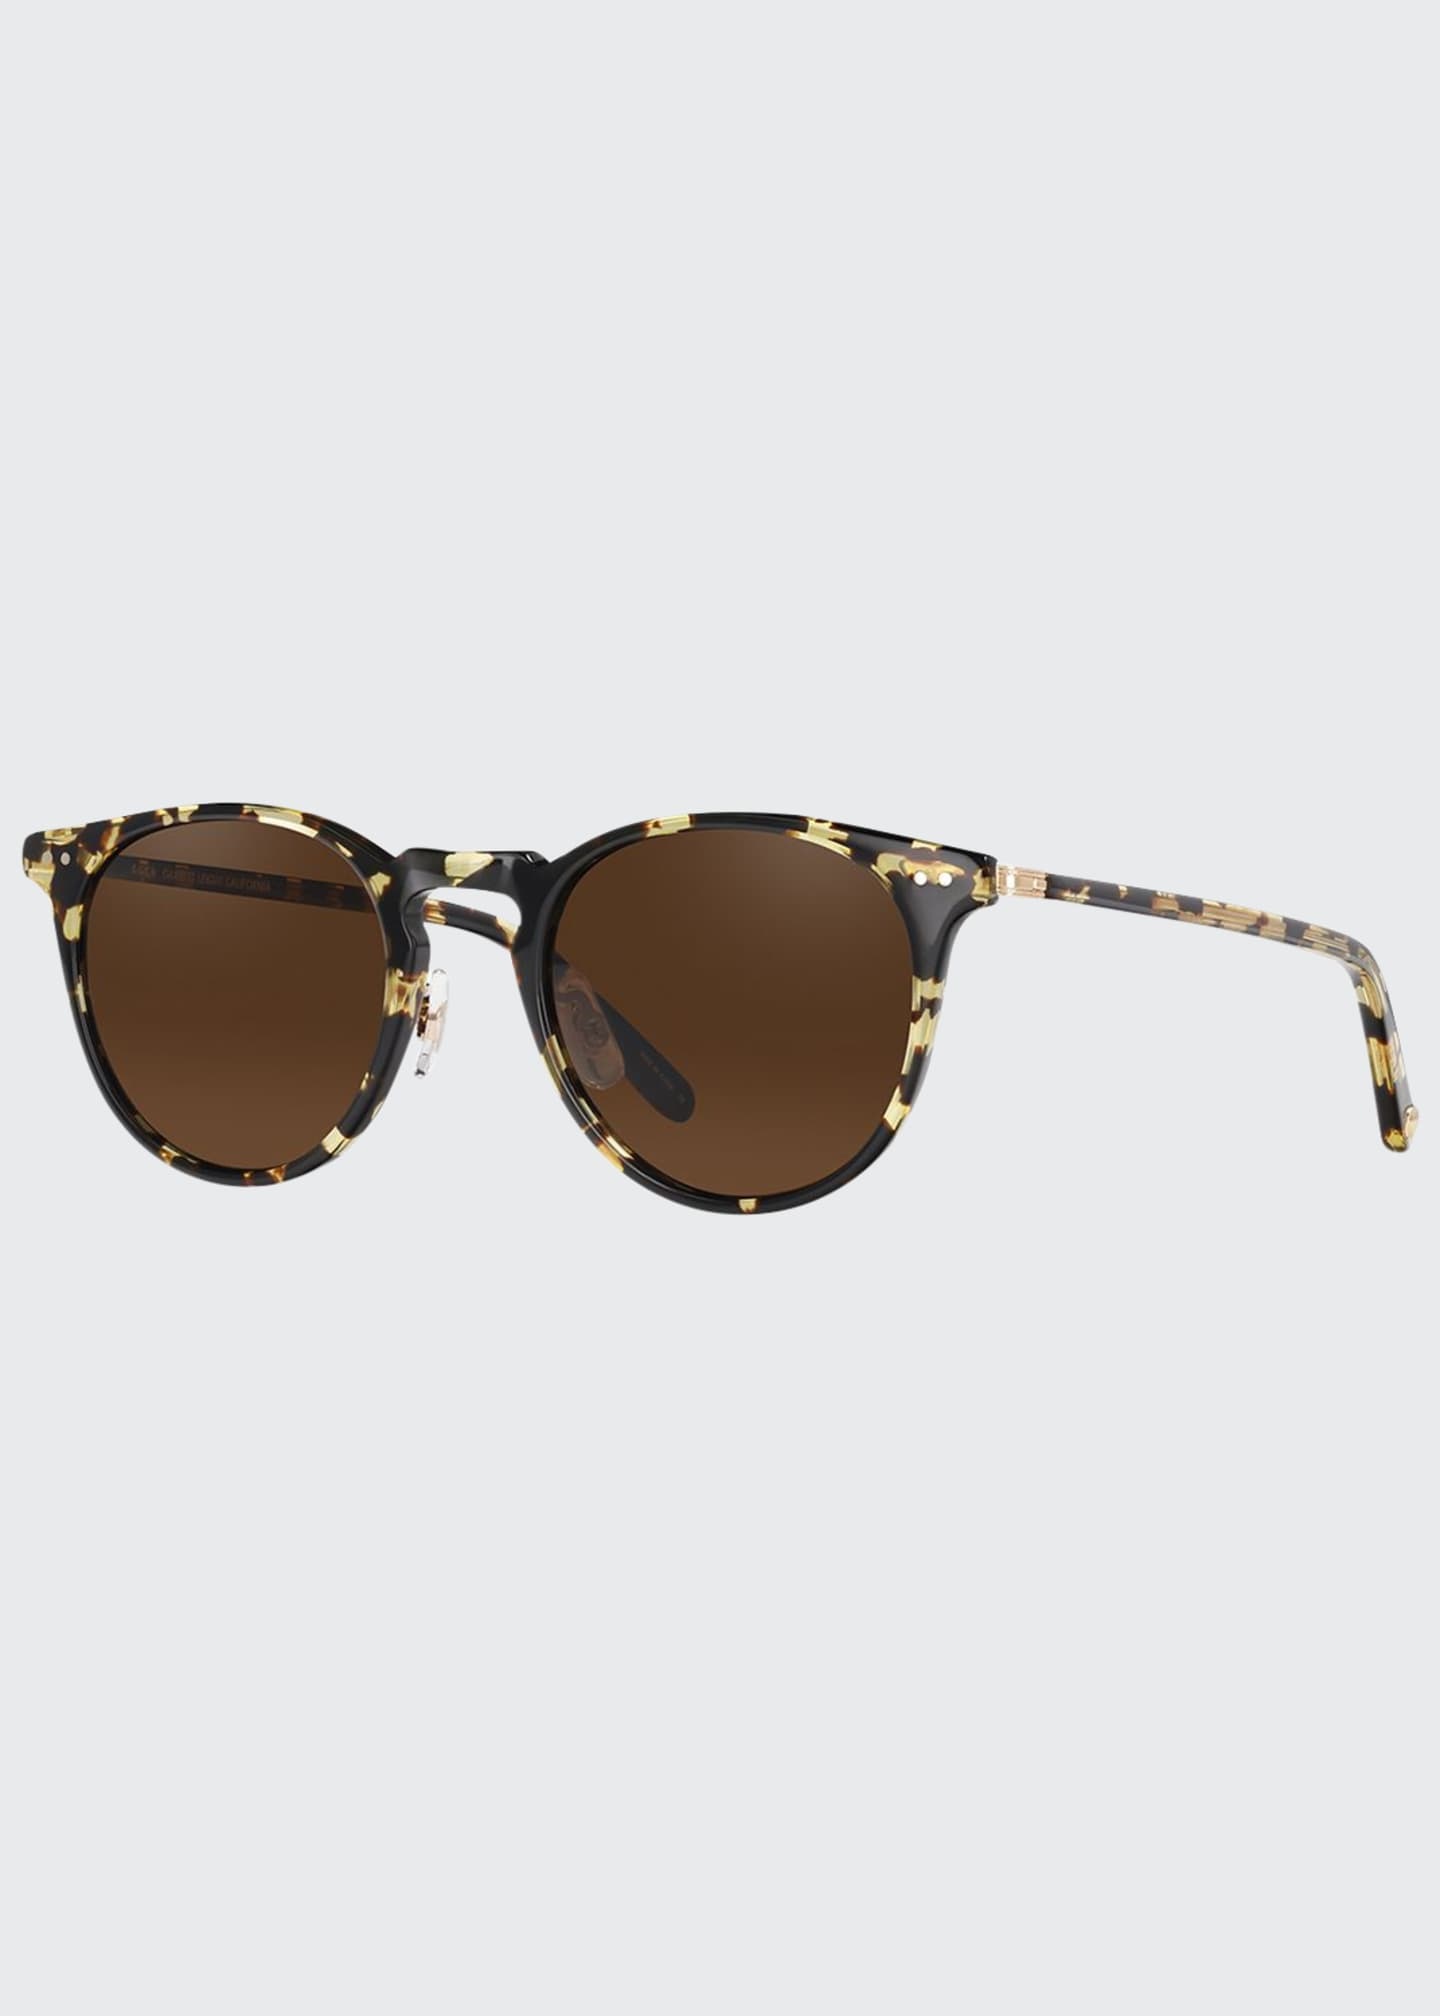 Image 1 of 2: Men's Ocean Block Tortoiseshell Sunglasses